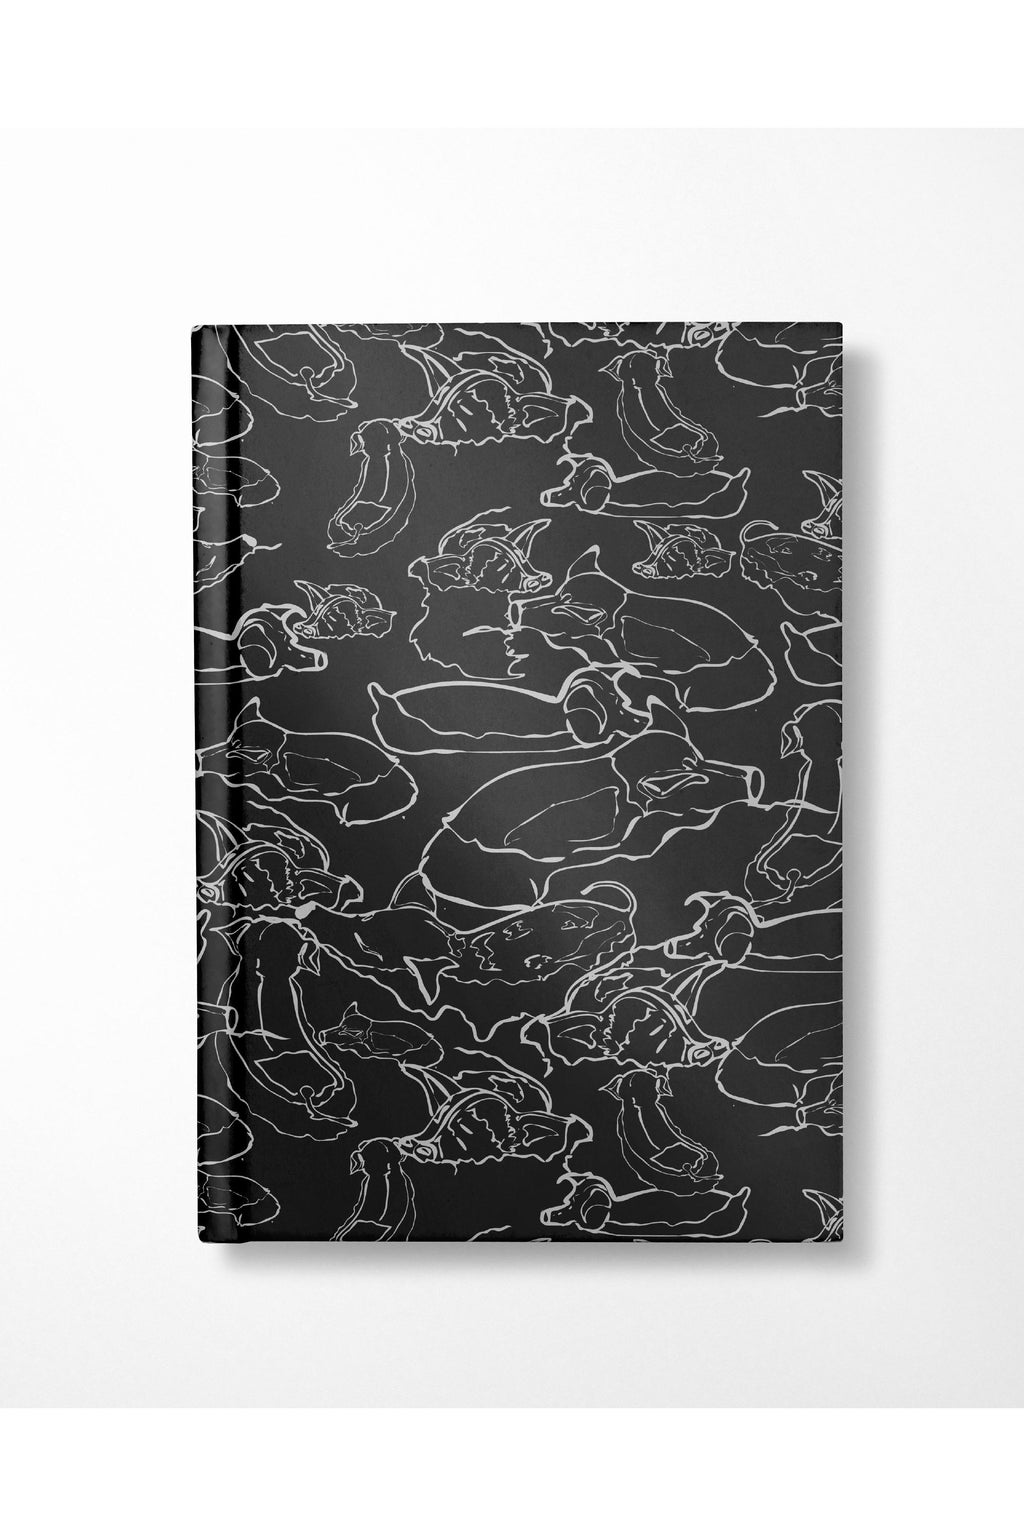 Swimming With The Pigs Large Hardcover Notebook - Black - Hausofassembly